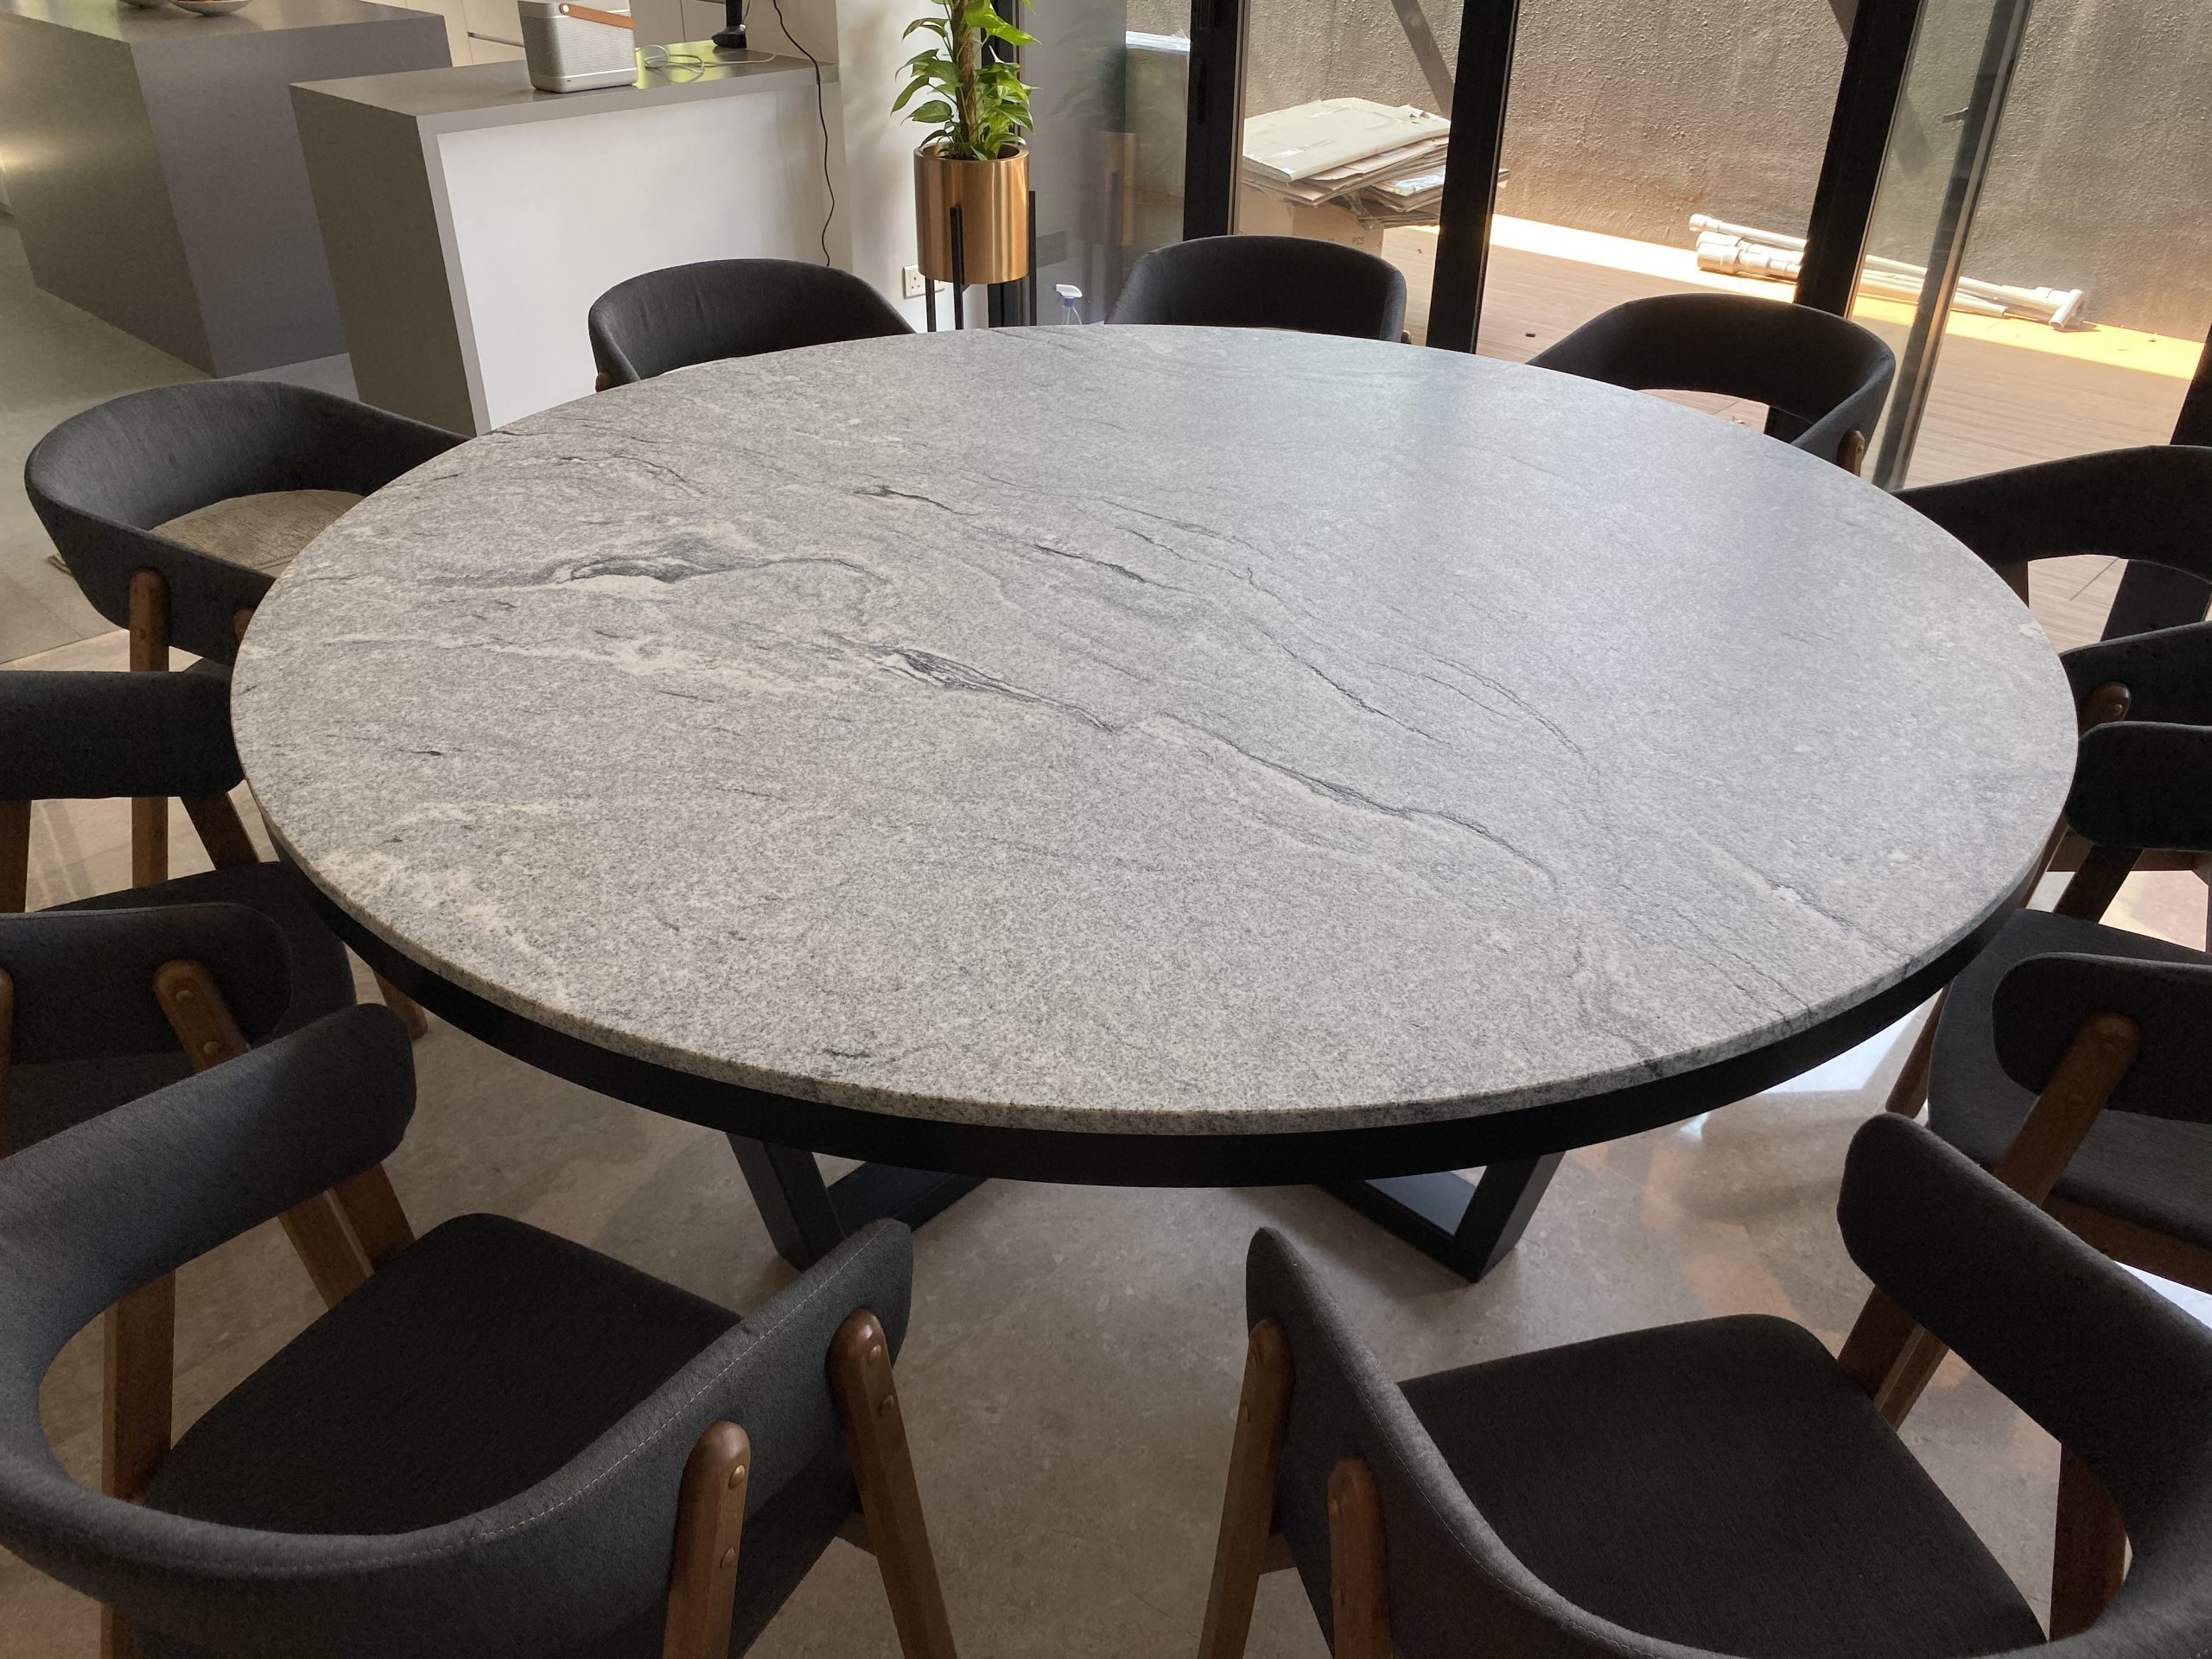 Dexter with Trimming Granite Dining Table (31)